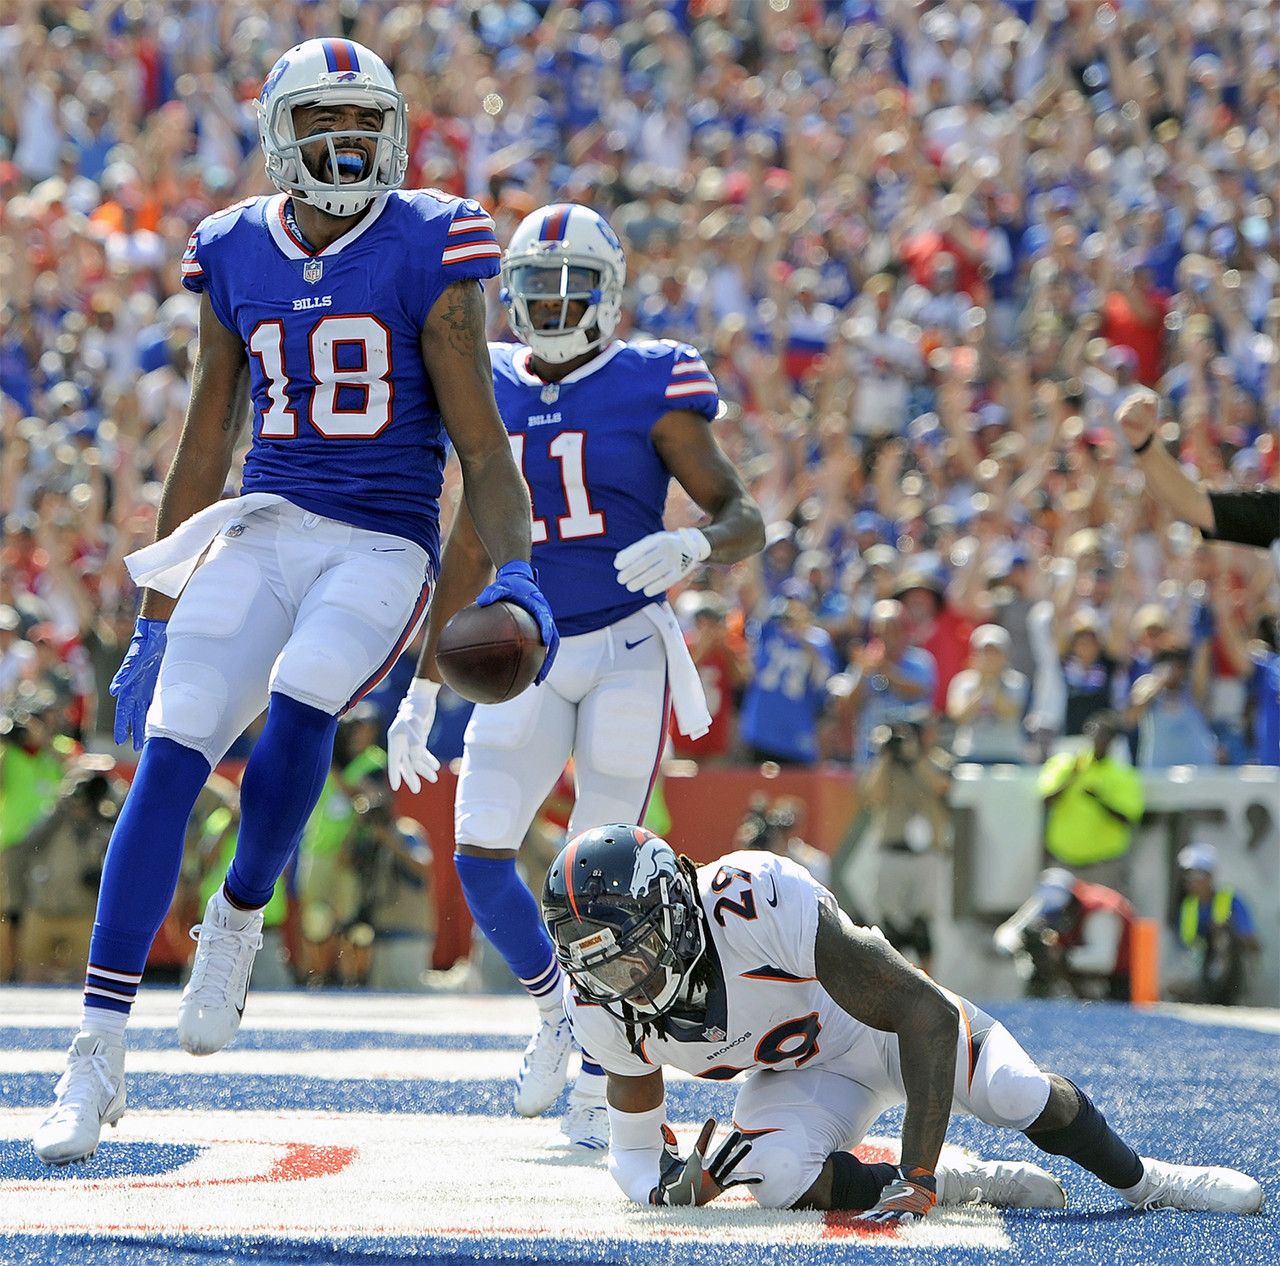 Buffalo Bills wide receiver Andre Holmes (18) celebrates after catching a touchdown pass from quarterback Tyrod Taylor, not pictured, as Denver Broncos free safety Bradley Roby (29) is slow to get up during the first half of an NFL football game, Sunday, Sept. 24, 2017, in Orchard Park, N.Y.